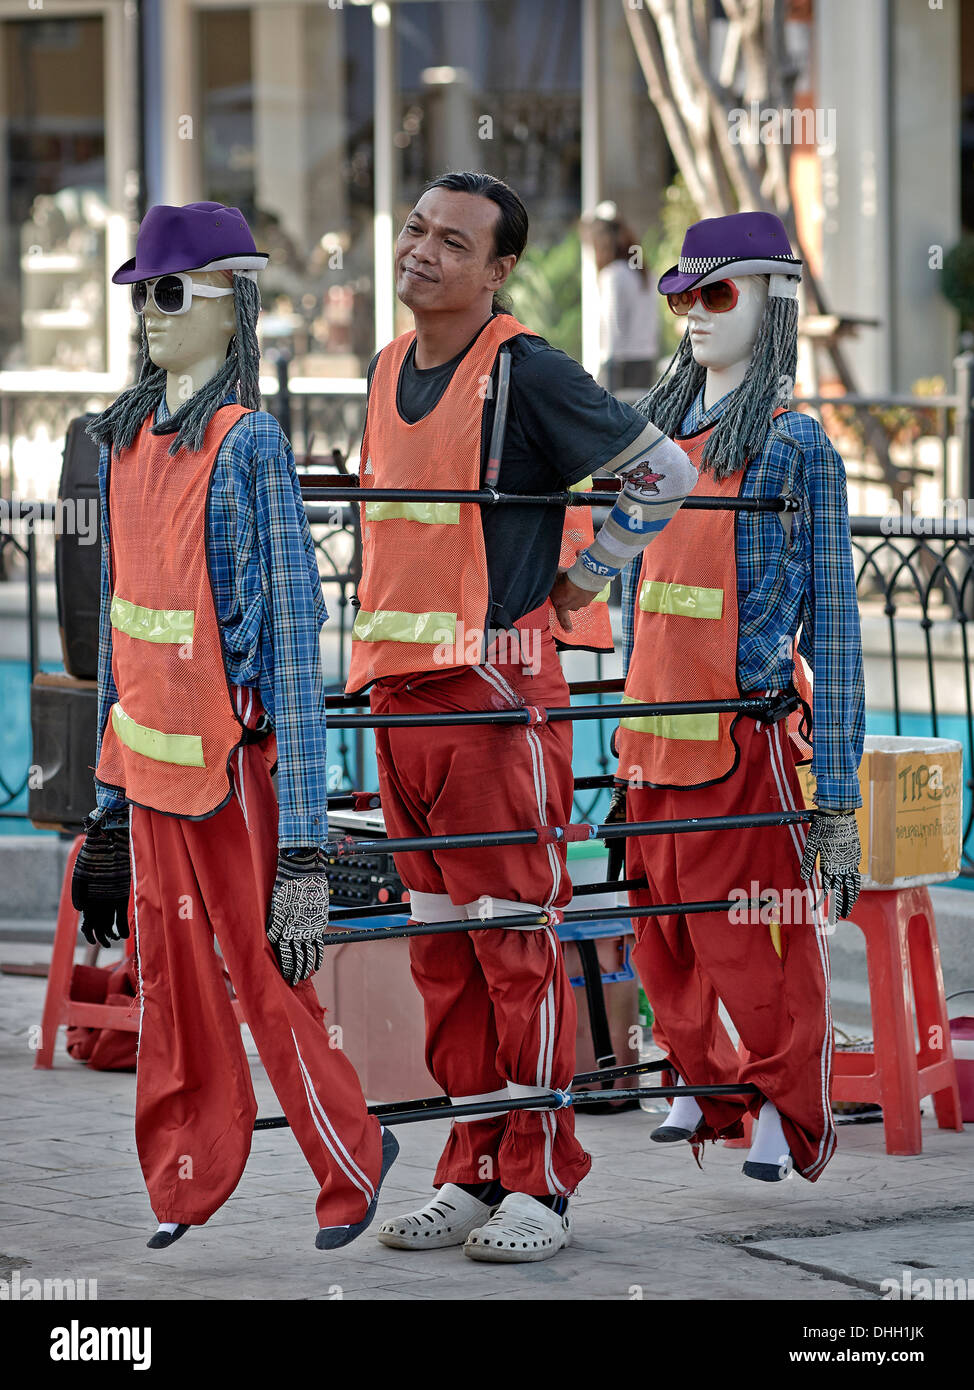 Street entertainer with synchronized mannequins preparing to perform a dance routine. Thailand S. E. Asia. - Stock Image